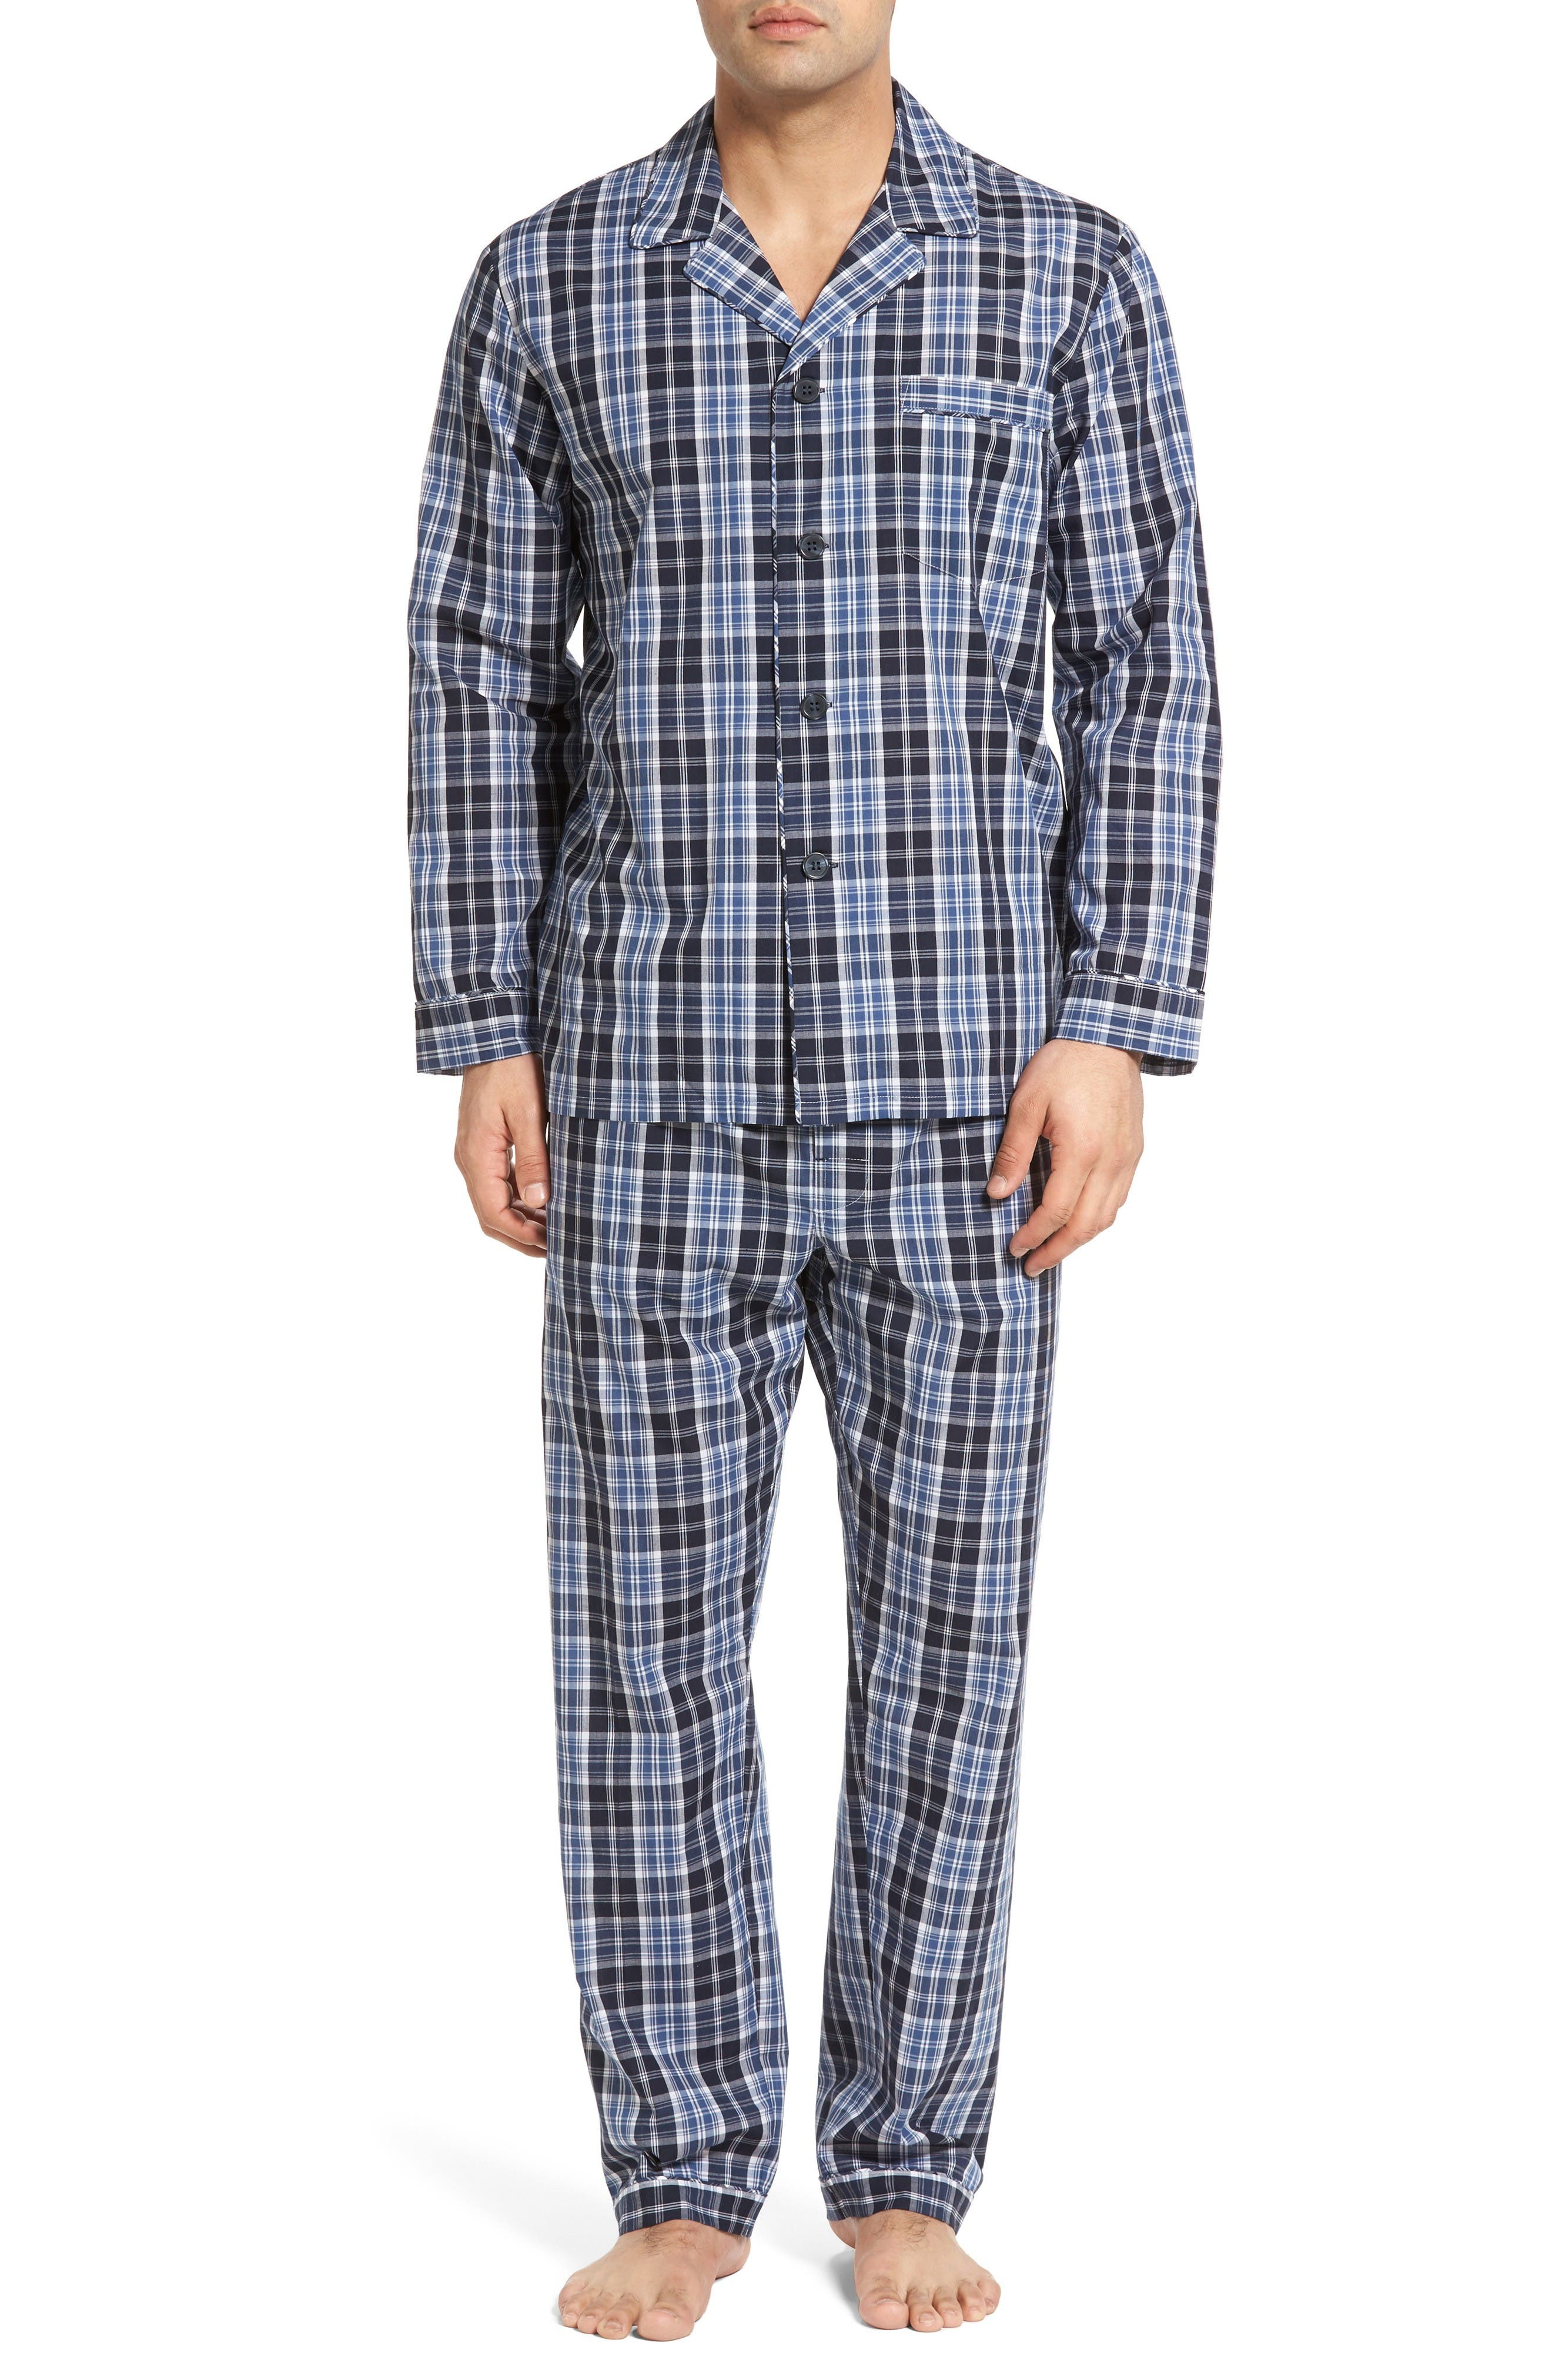 Alternate Image 1 Selected - Majestic International 'Ryden' Cotton Blend Pajamas